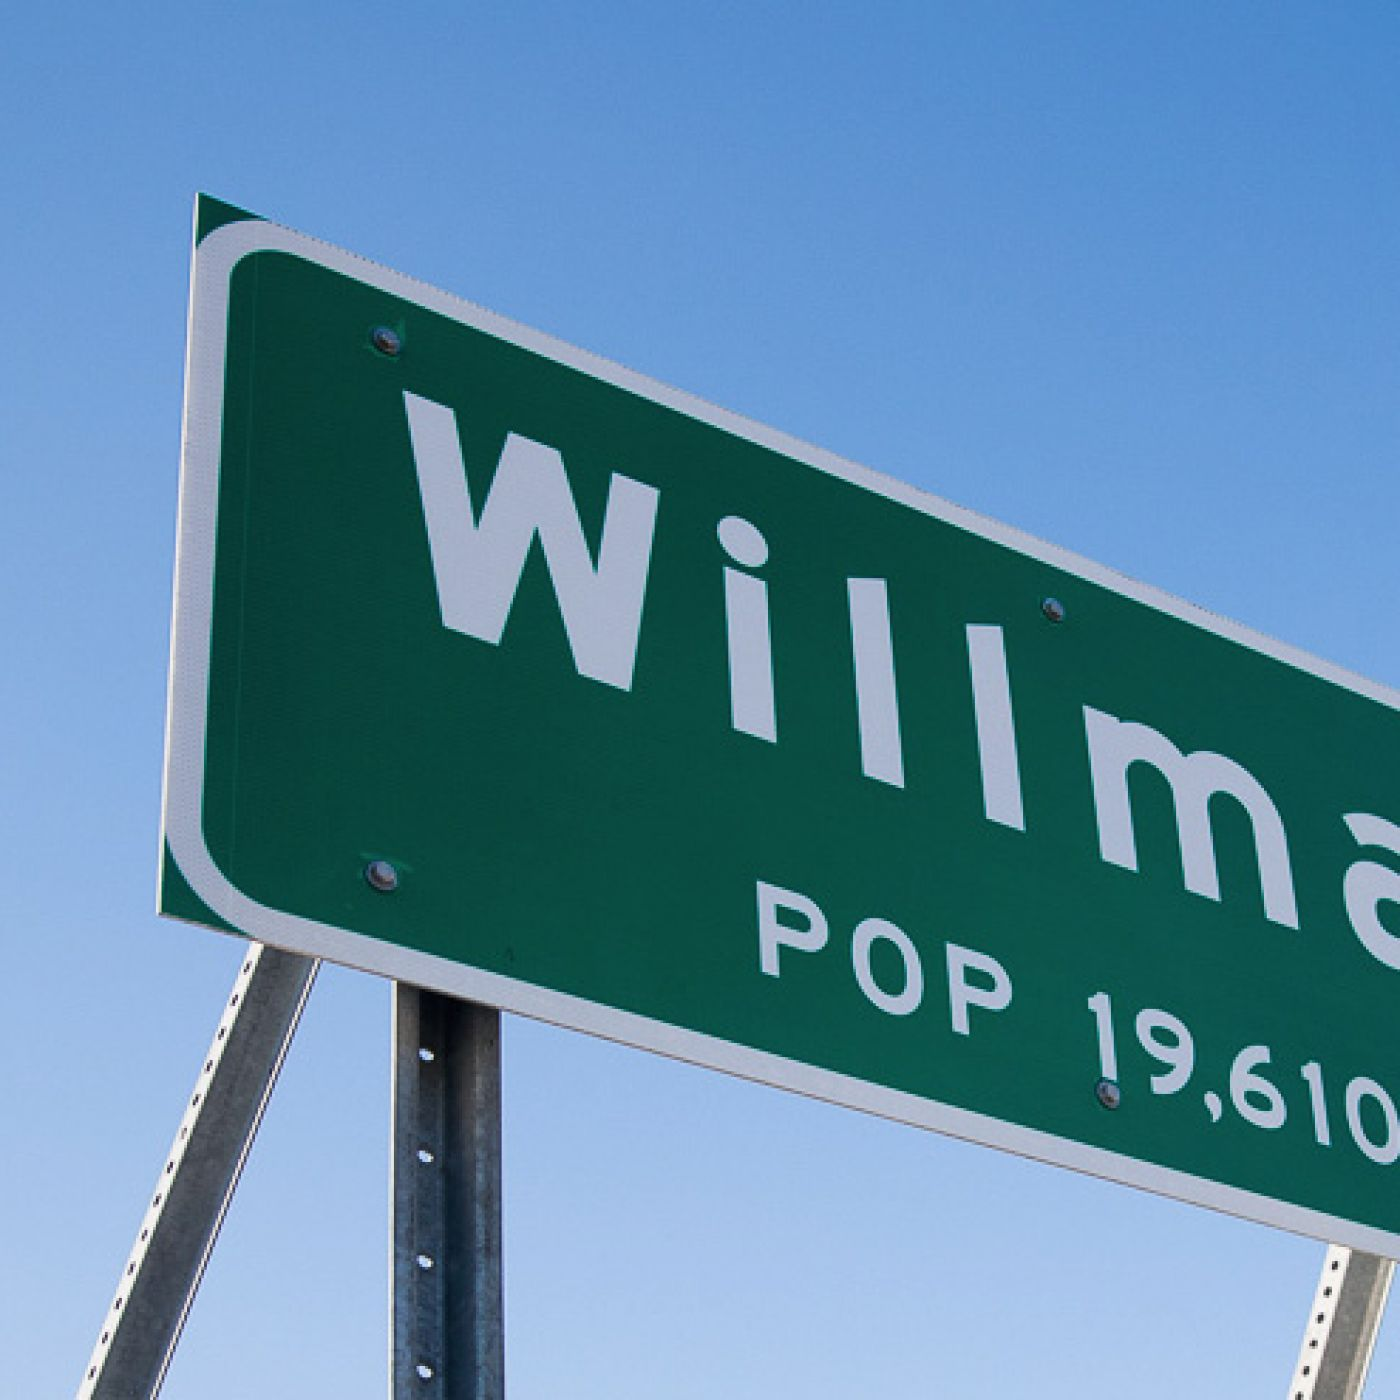 Willmar city limits sign